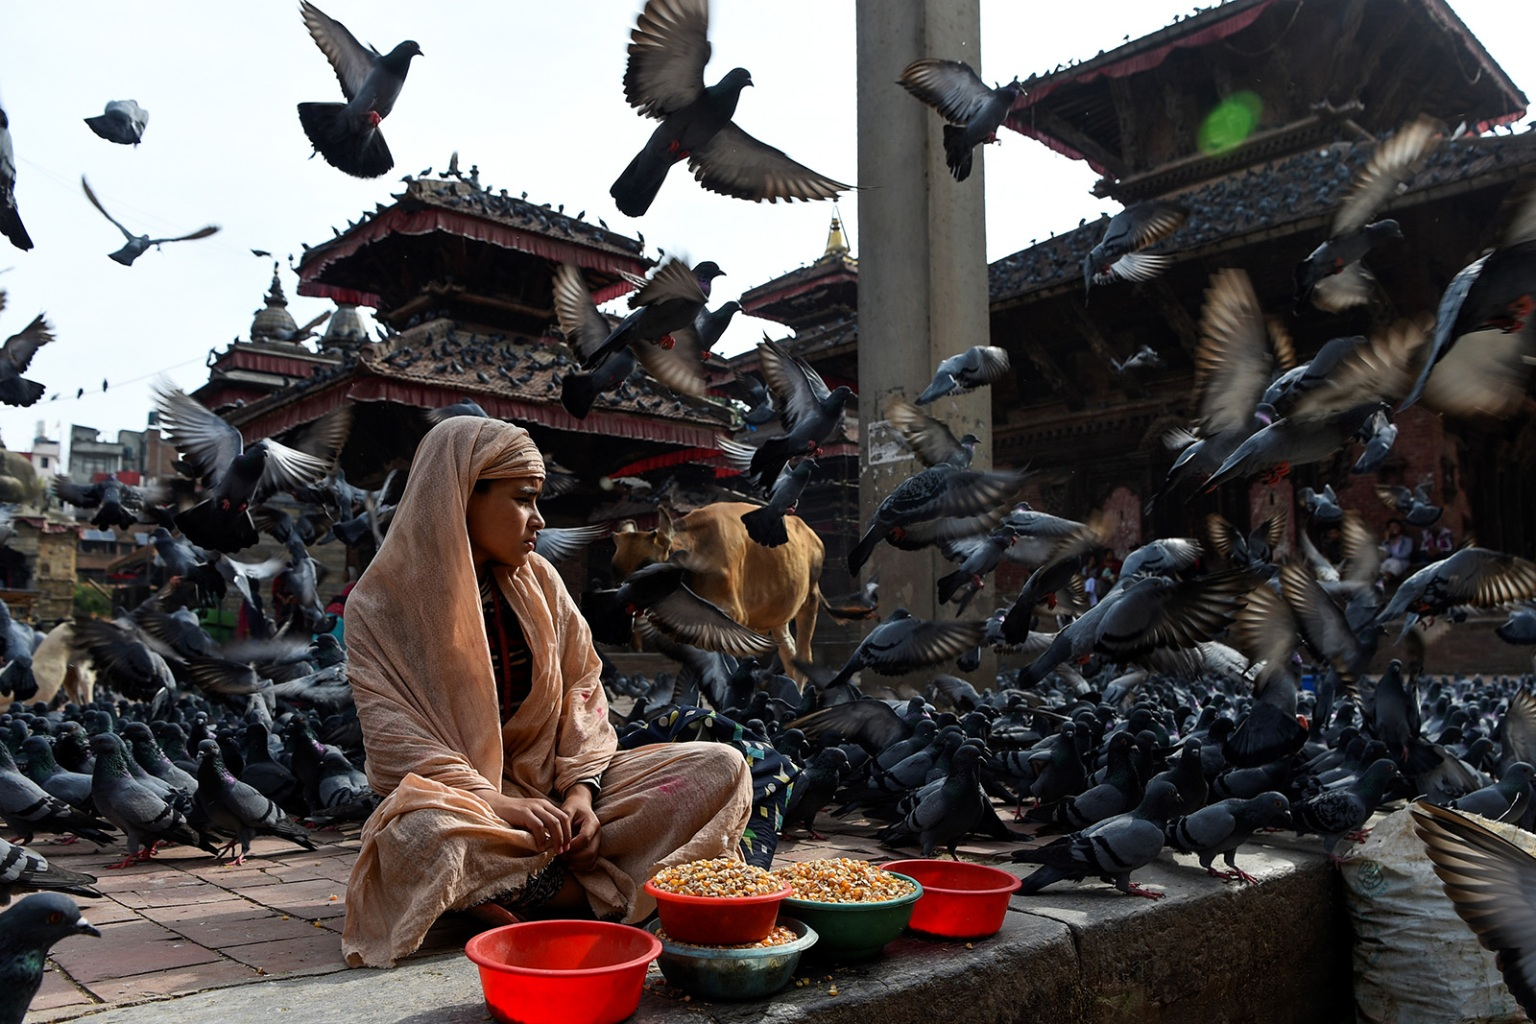 A girl waits for customers to sell grains to feed the pigeons at Basantapur Durbar Square in Kathmandu, Nepal, on Aug. 22. PRAKASH MATHEMA/AFP/Getty Images